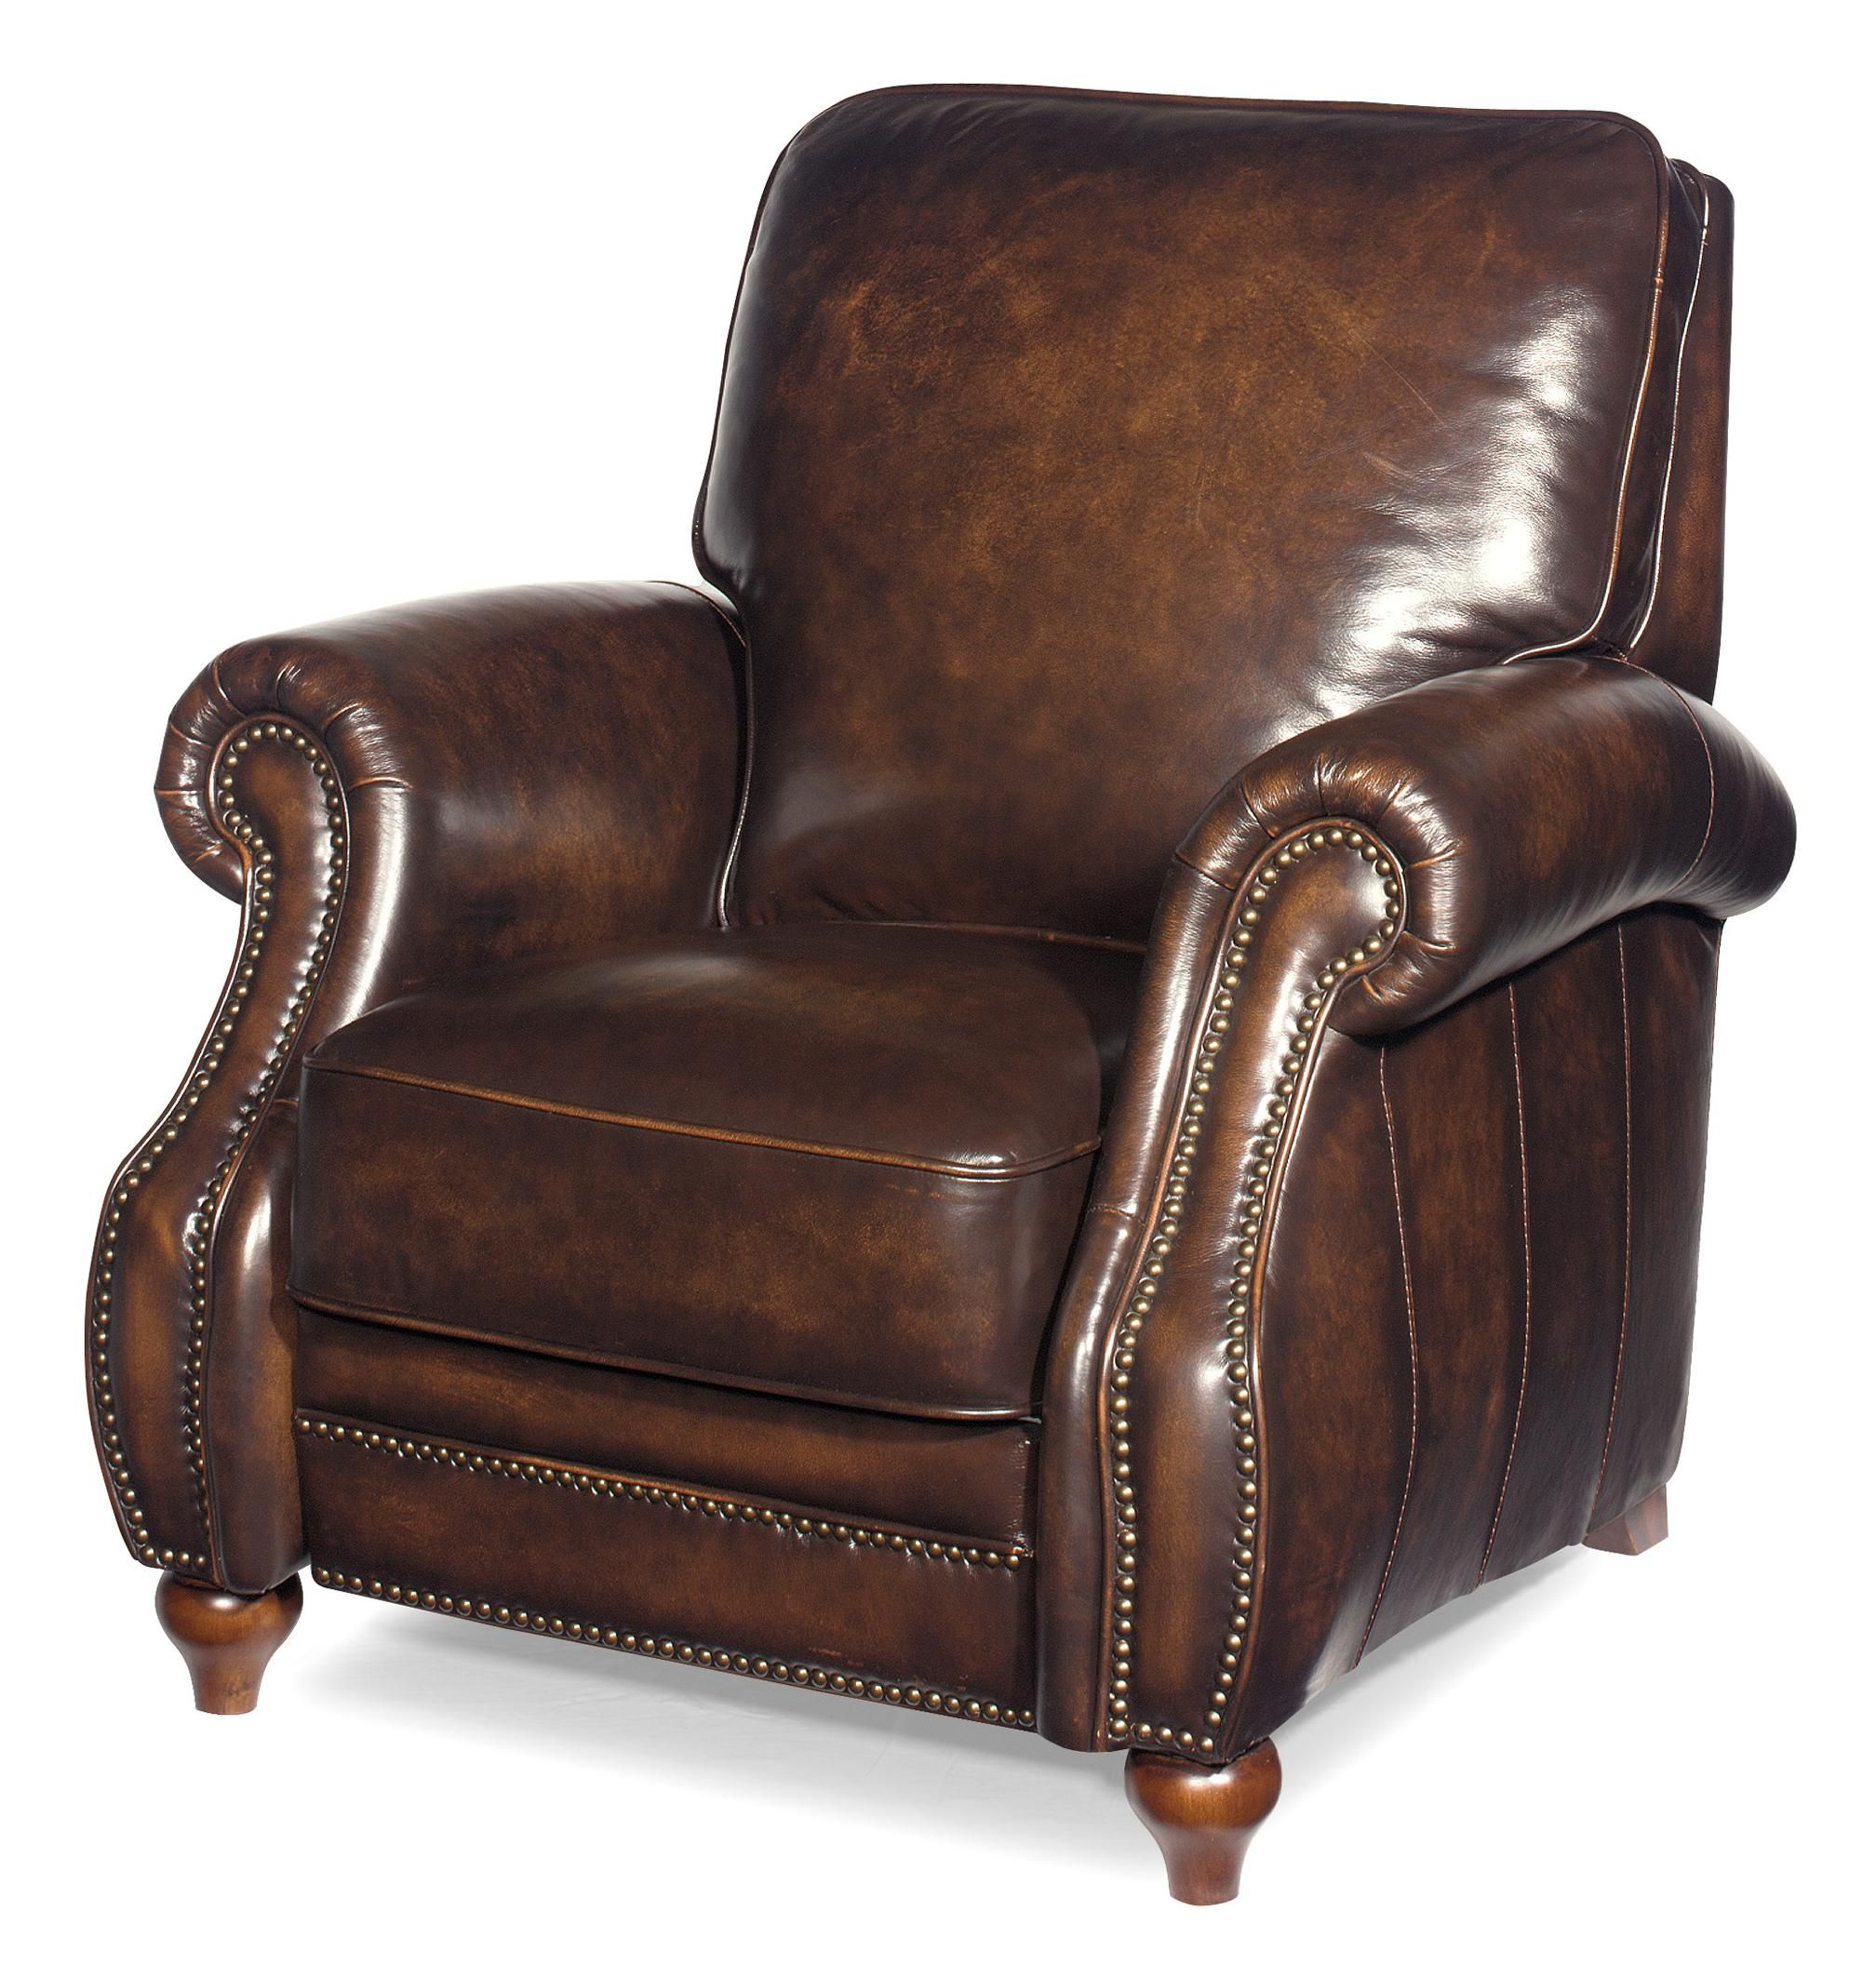 Traditional Leather High Leg Recliner With Turned Wood Feet Waco, Temple,  Killeen, Texas. Wolf FurnitureFurniture MattressFurniture StoresBrothers ...